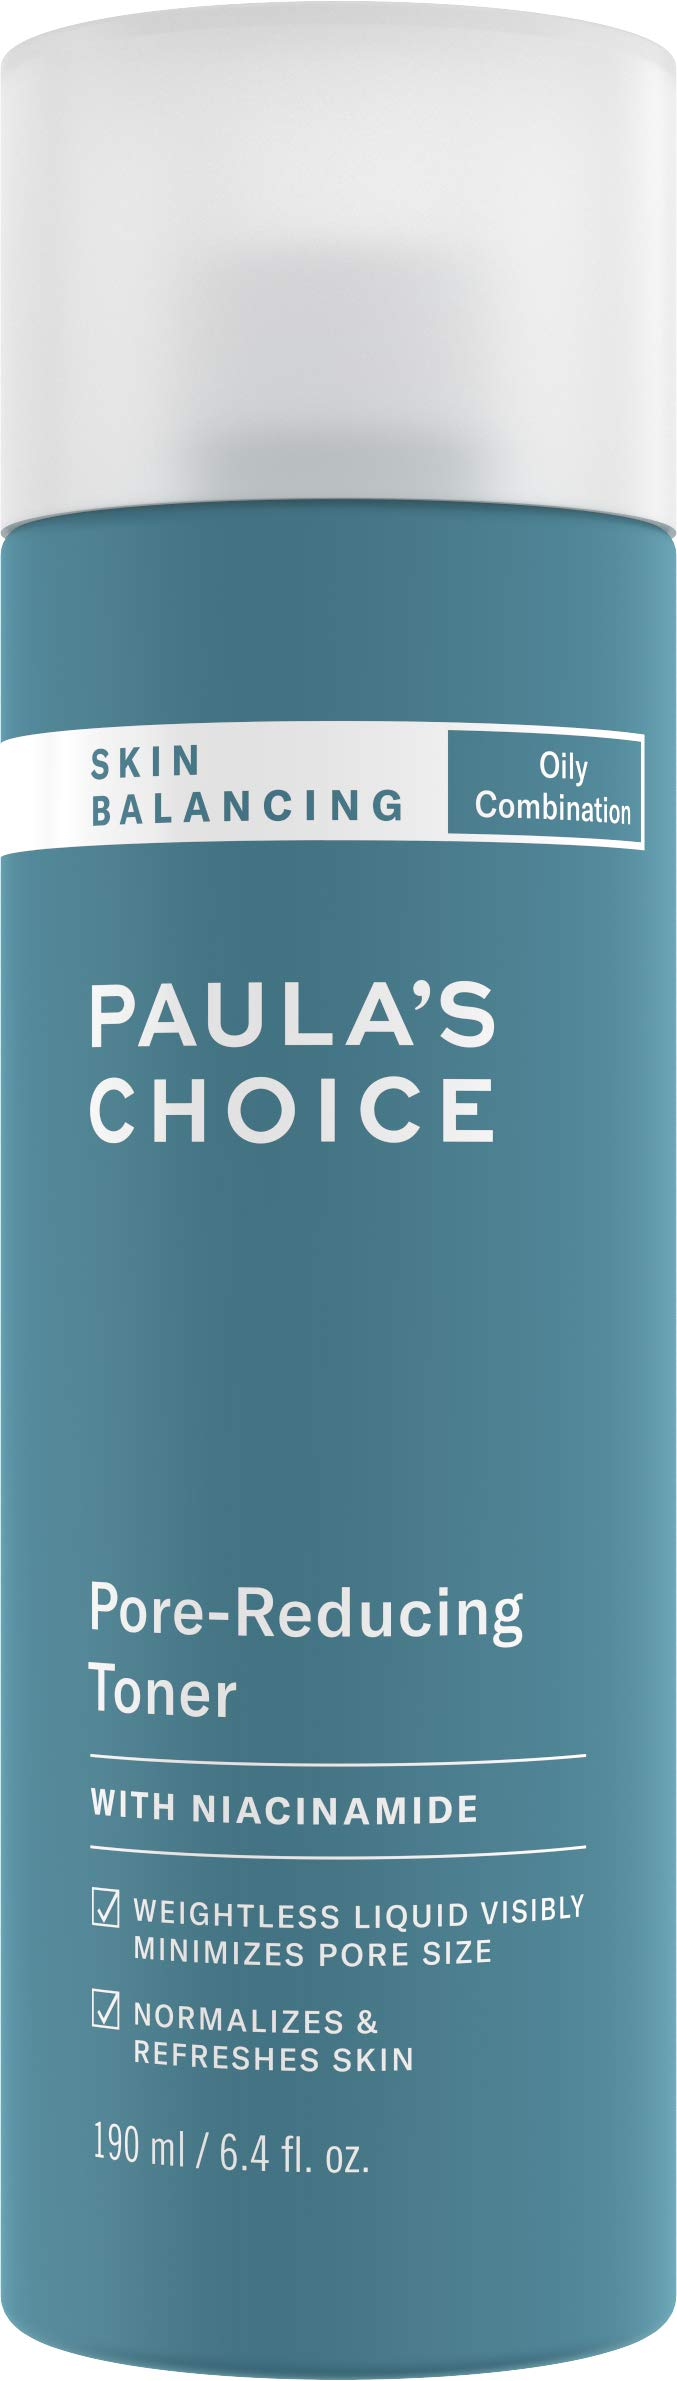 Paula's Choice-SKIN BALANCING Pore-Reducing Toner, 6.4 oz Bottle, for Combination/Oily Skin by PAULA'S CHOICE